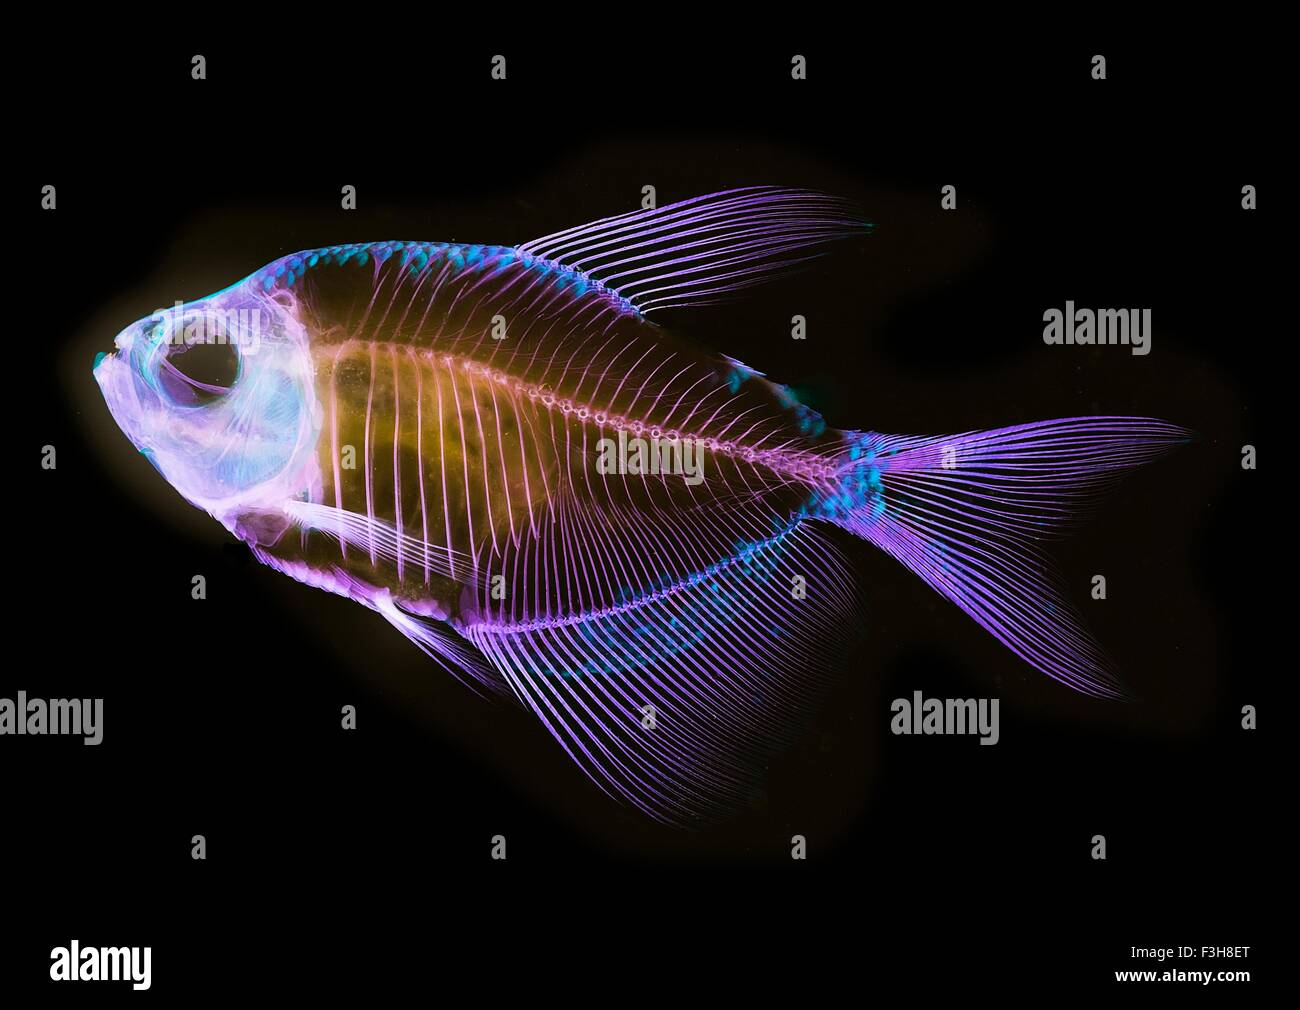 Alizarin bone stain anatomical fish skeleton preparation of a white finned tetra - Stock Image